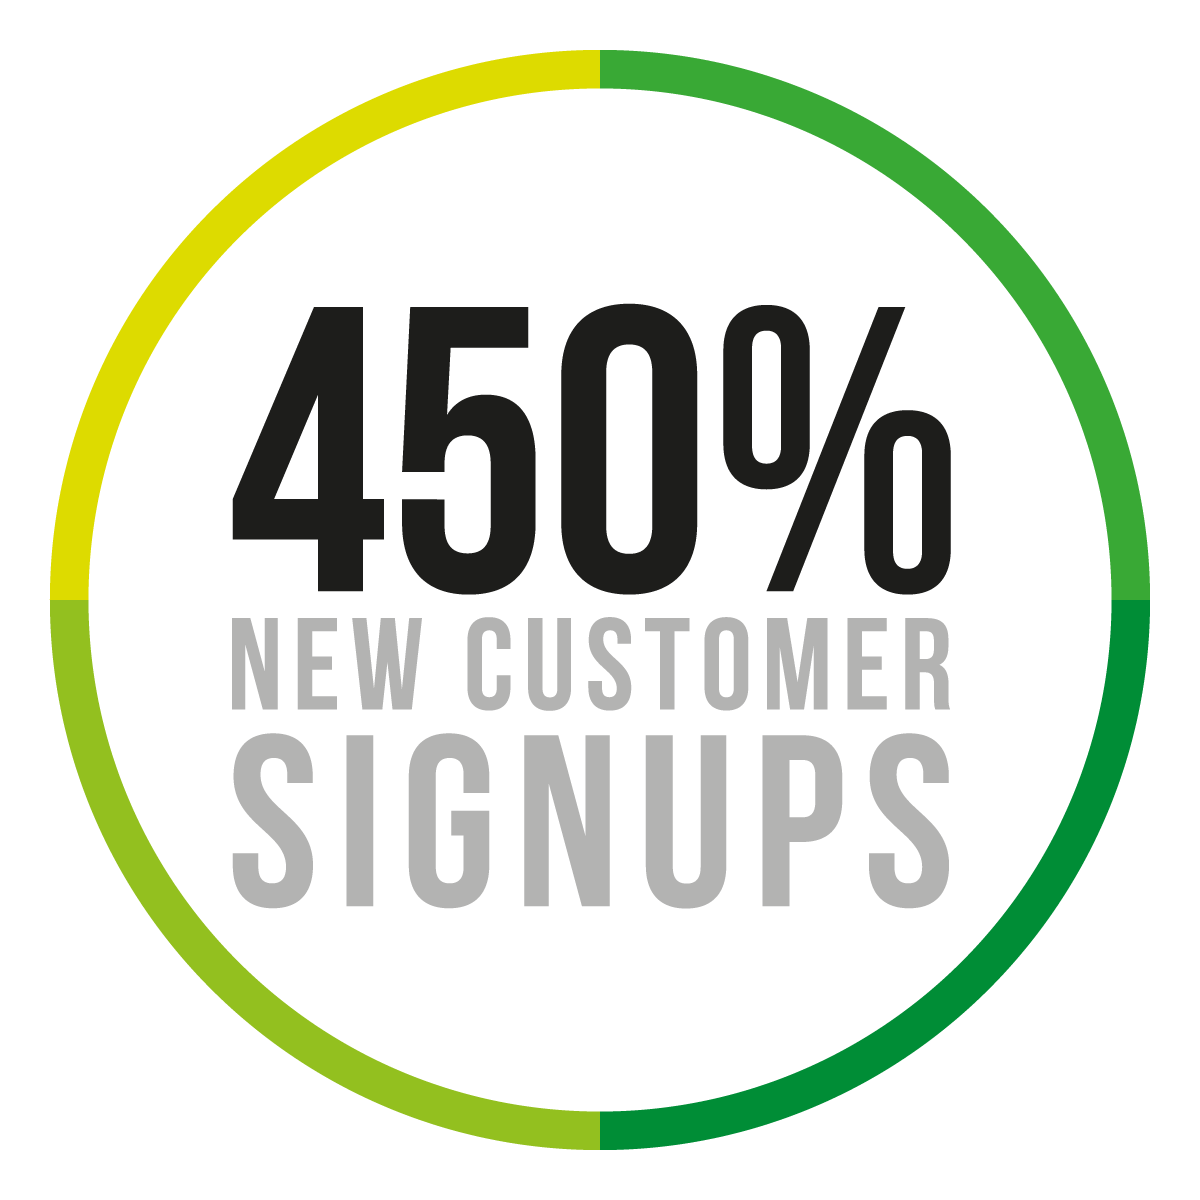 RAW2K - 450% New Customer Signups